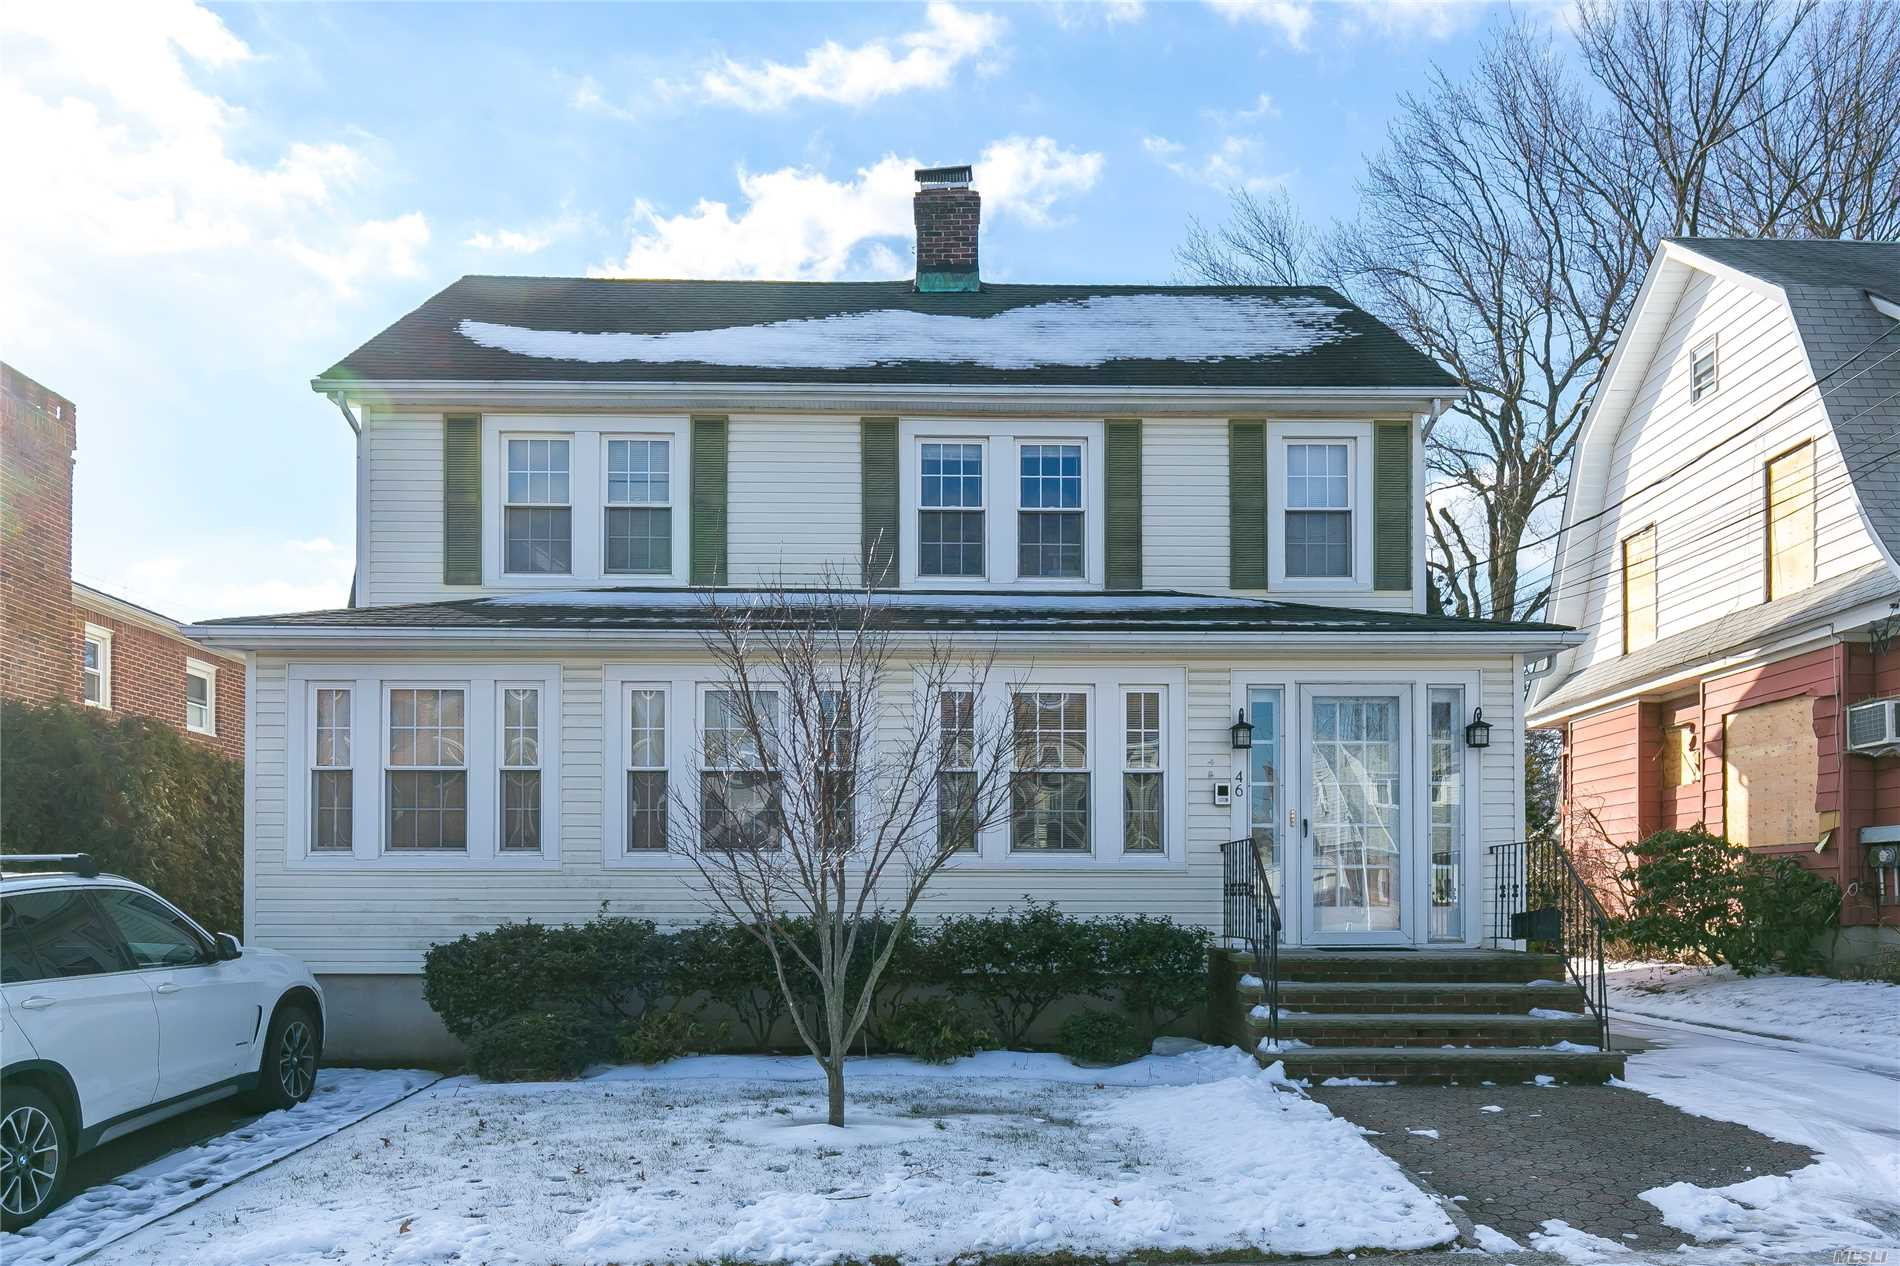 Spacious, Sun-Filled, 3 Bedroom, 2 Bath Apartment In Port Washington. 4 Blocks To Long Island Railroad And Town. Large Master Br W/ Master Bath. French Doors Leading To A Private Backyard. Two Additional Bedrooms And A Second Full Bath. Large L-Shaped Living Room/Dining Room. Large Eat In Kitchen. Partially Finished Basement With Washer/Dryer And Great Storage. 2 Car Garage. Cac. 30 Minute Direct Commute To Nyc. Award Winning Schools. Pets Considered With Extra Security.